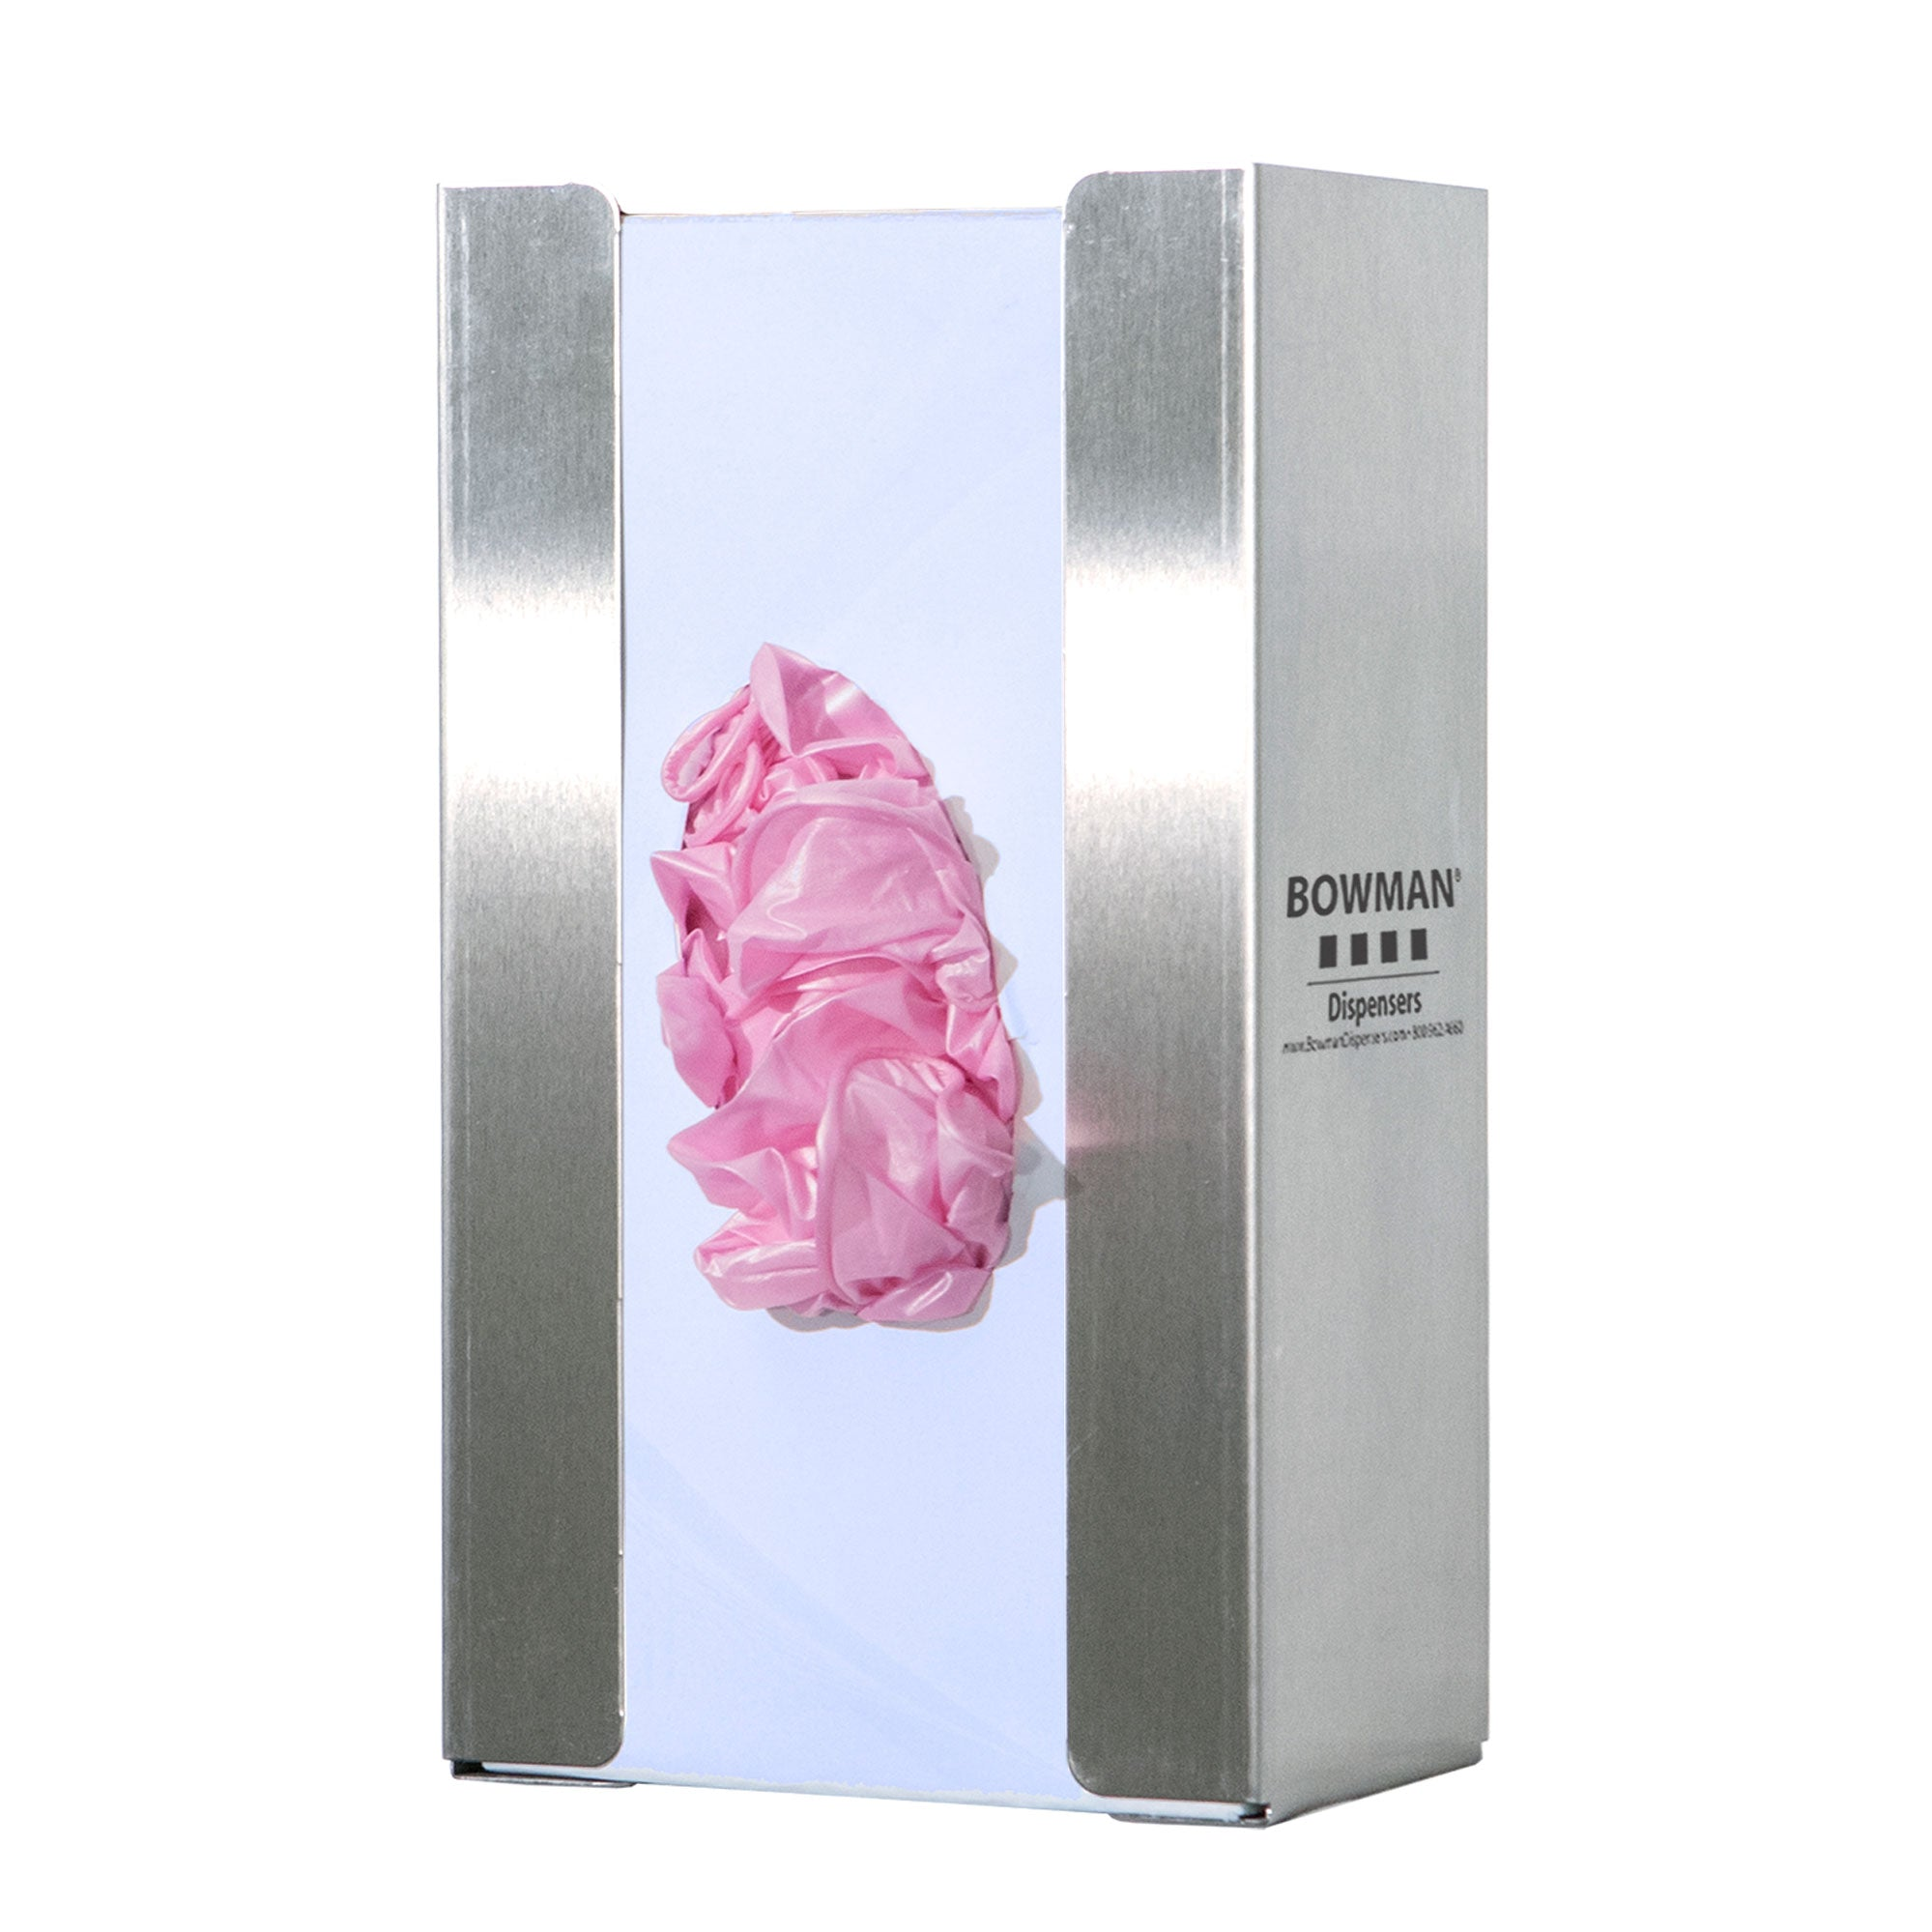 Bowman Stainless Steel Glove Box Dispenser